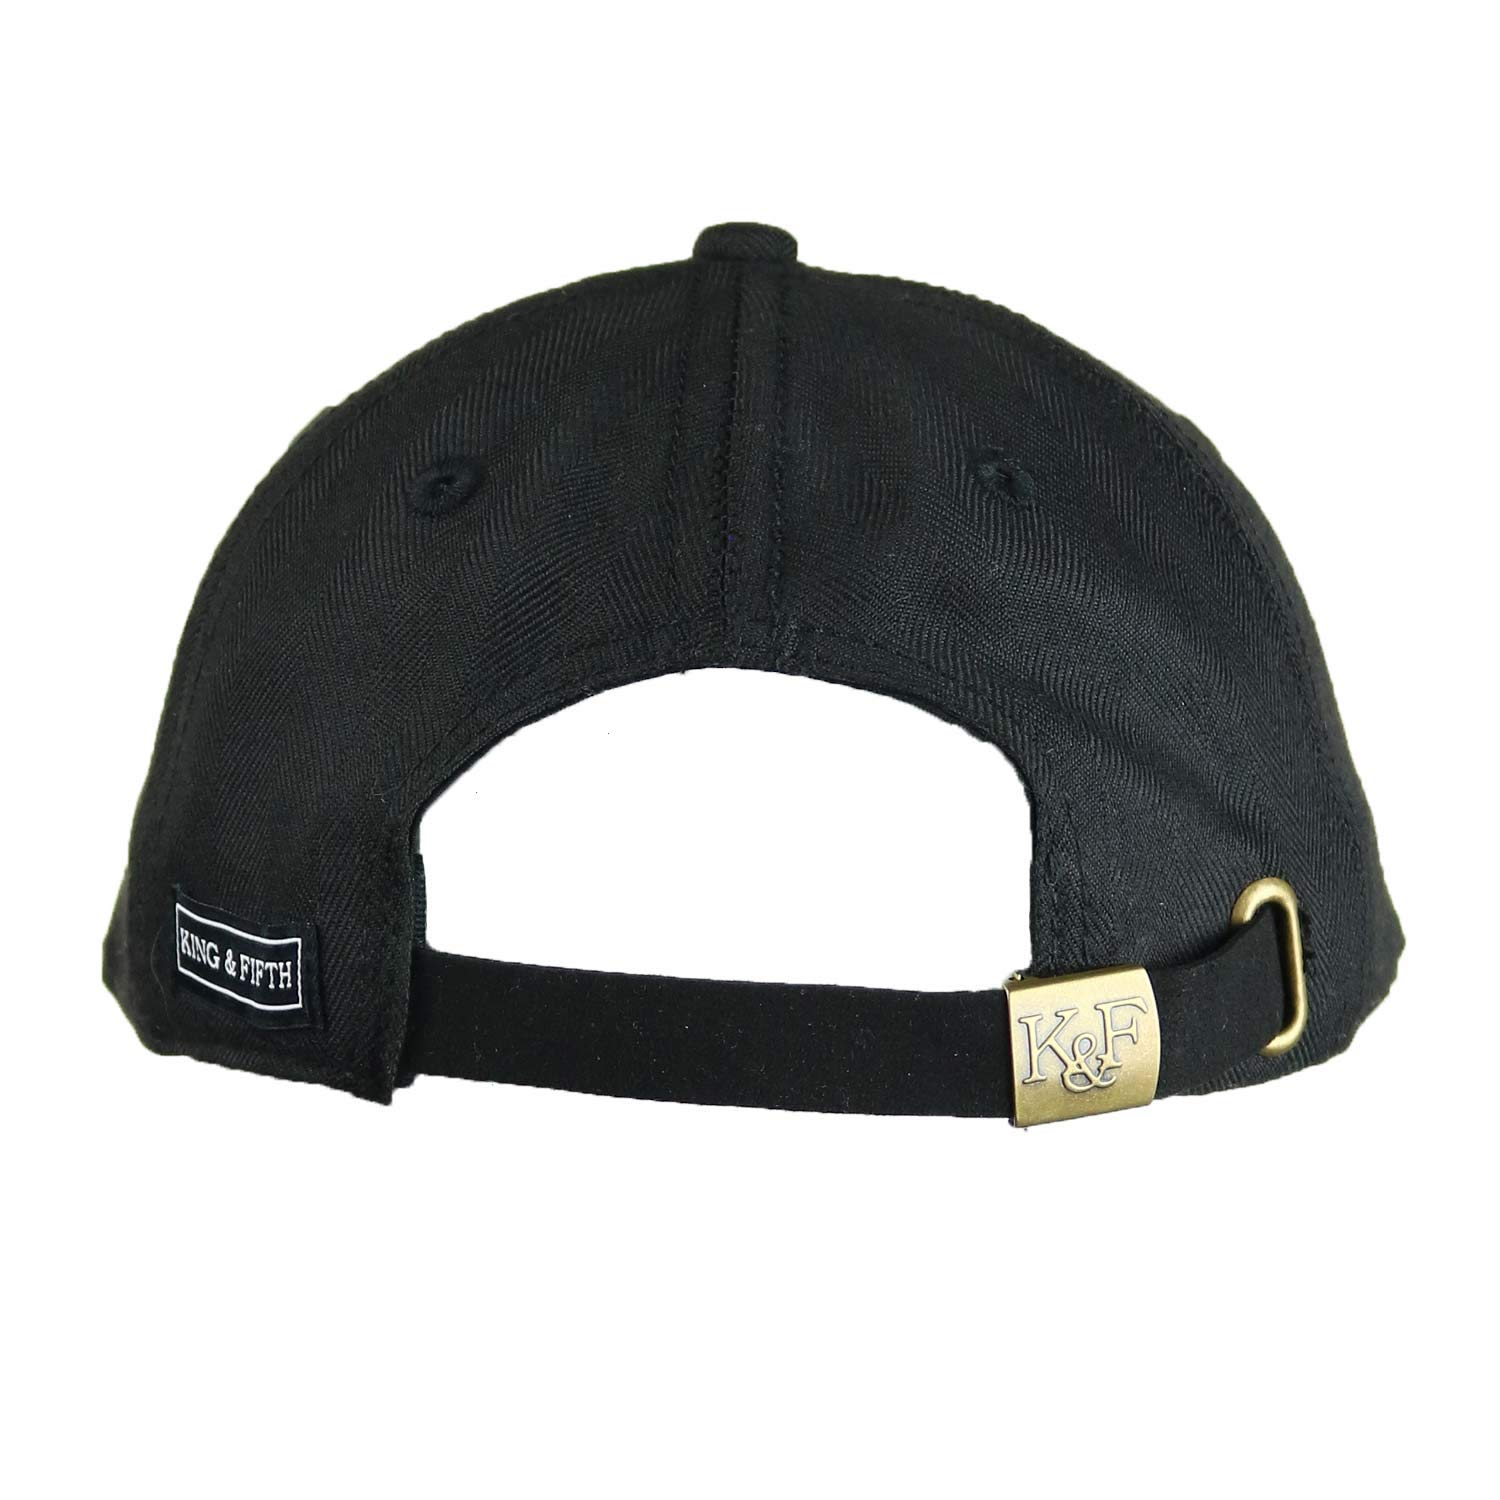 Baseball Hats for Men by King   Fifth  141693a2a348